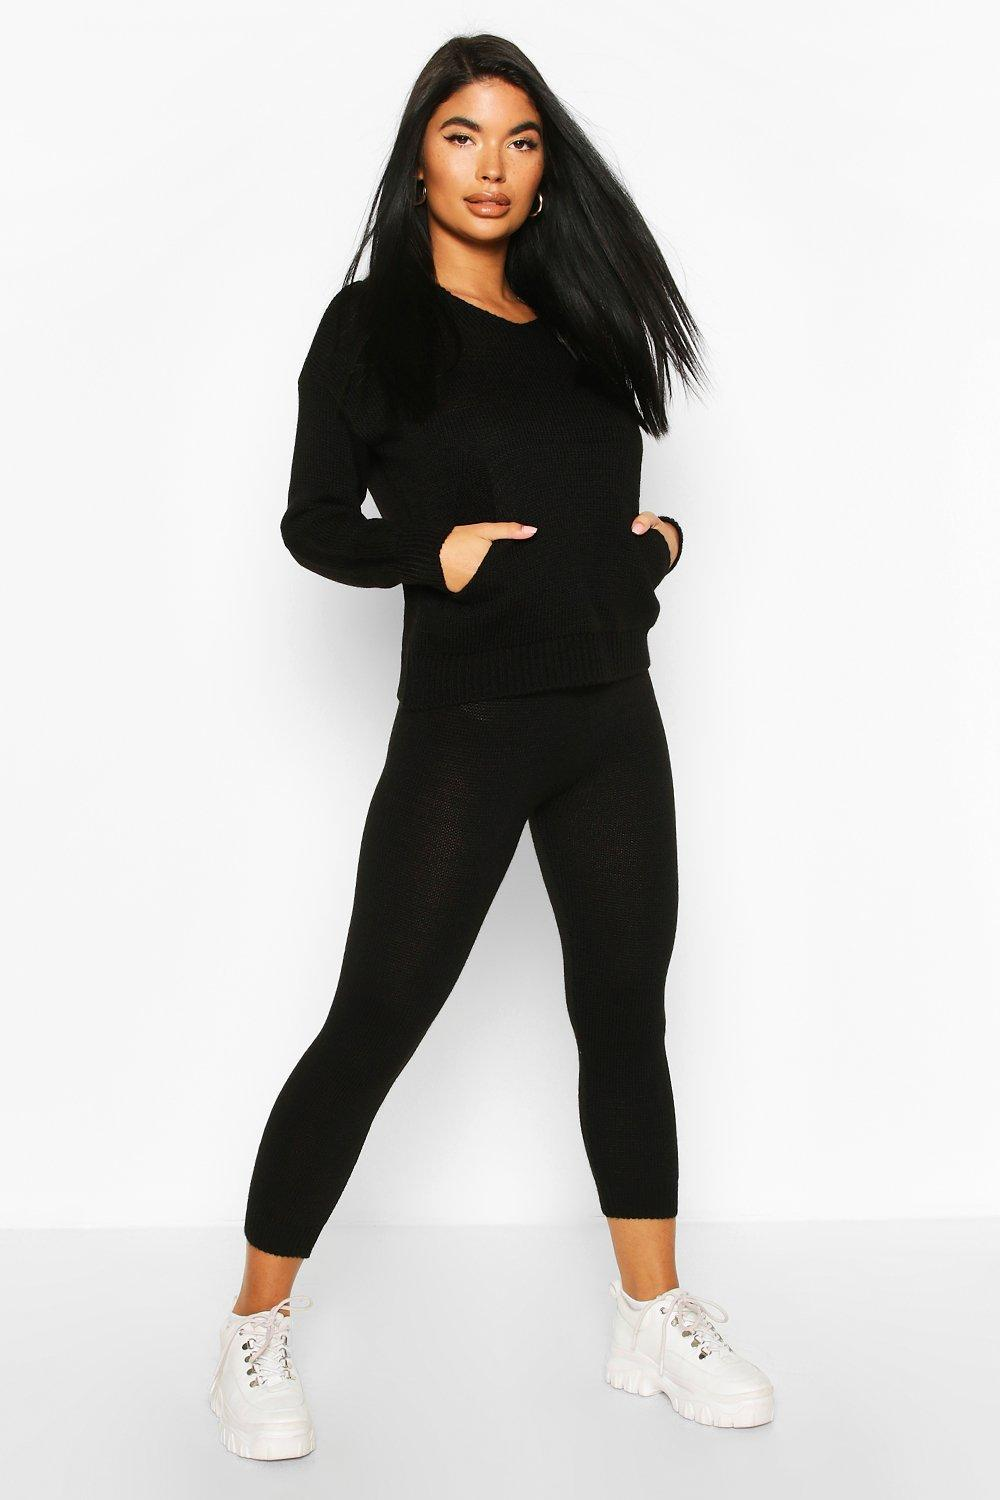 boohoo Womens Petite Hooded Knit And Jogger Co-Ord - Black - L, Black